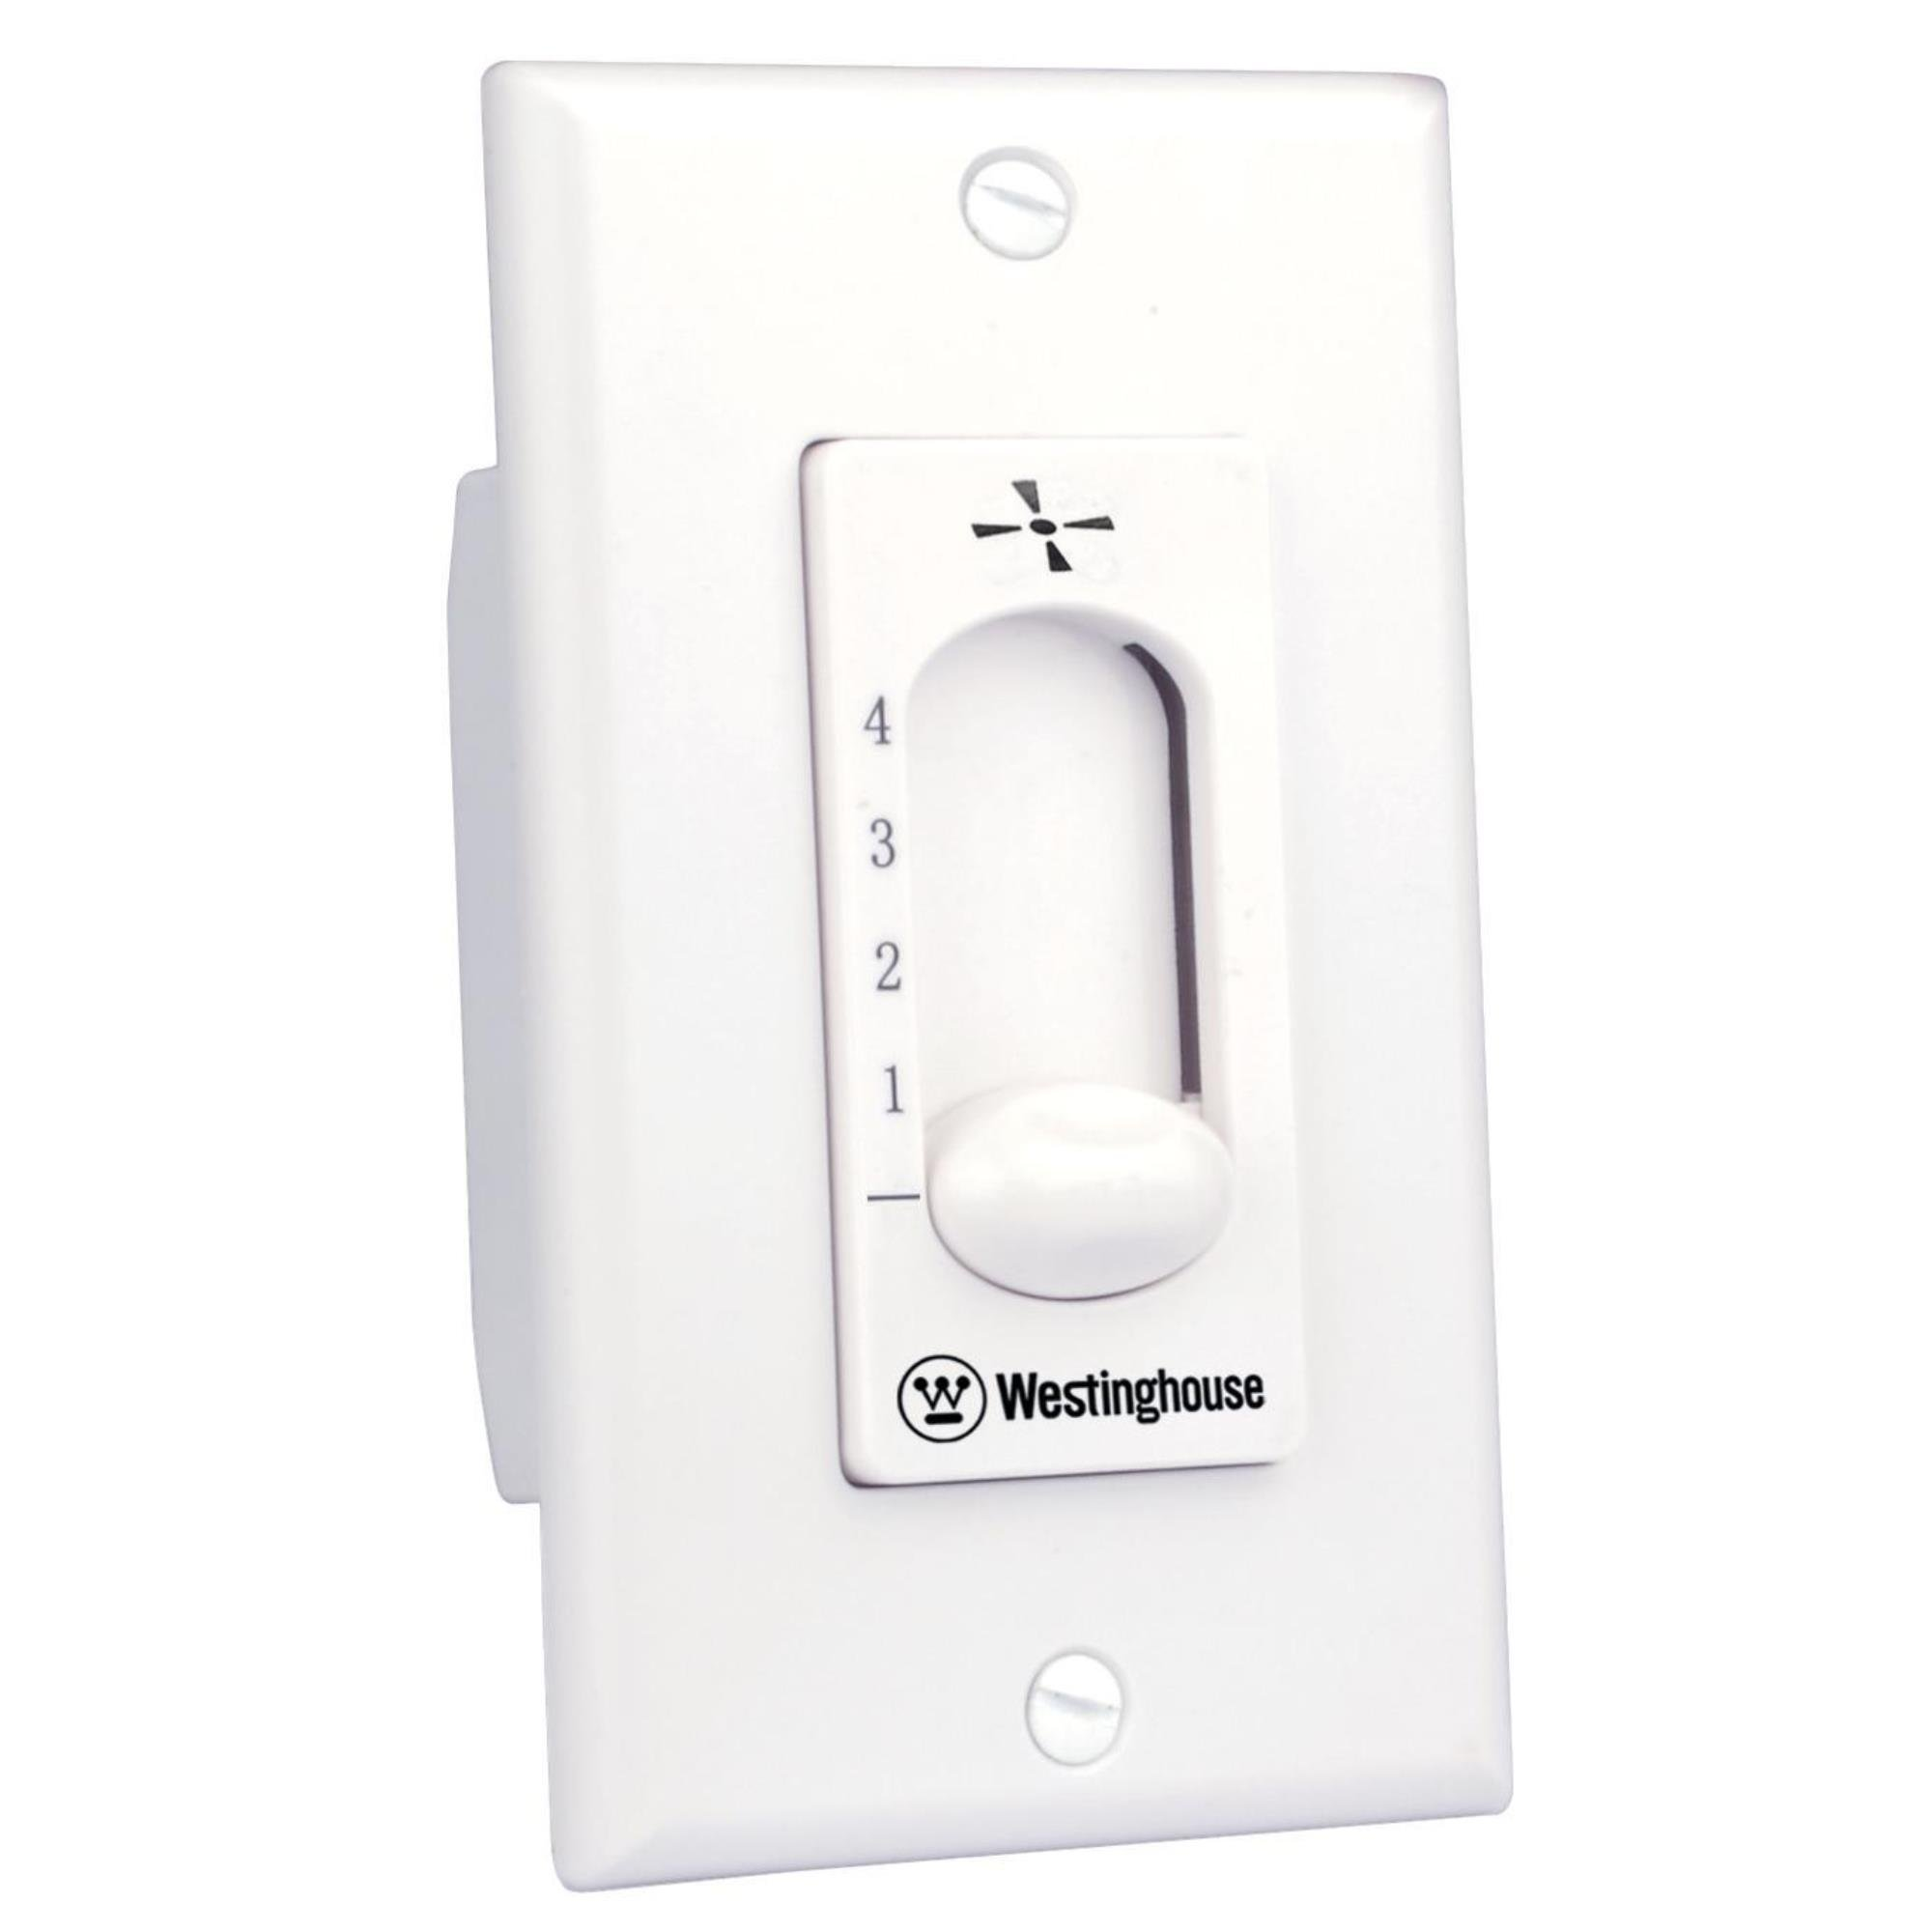 Westinghouse 7787200 Ceiling Wall Control